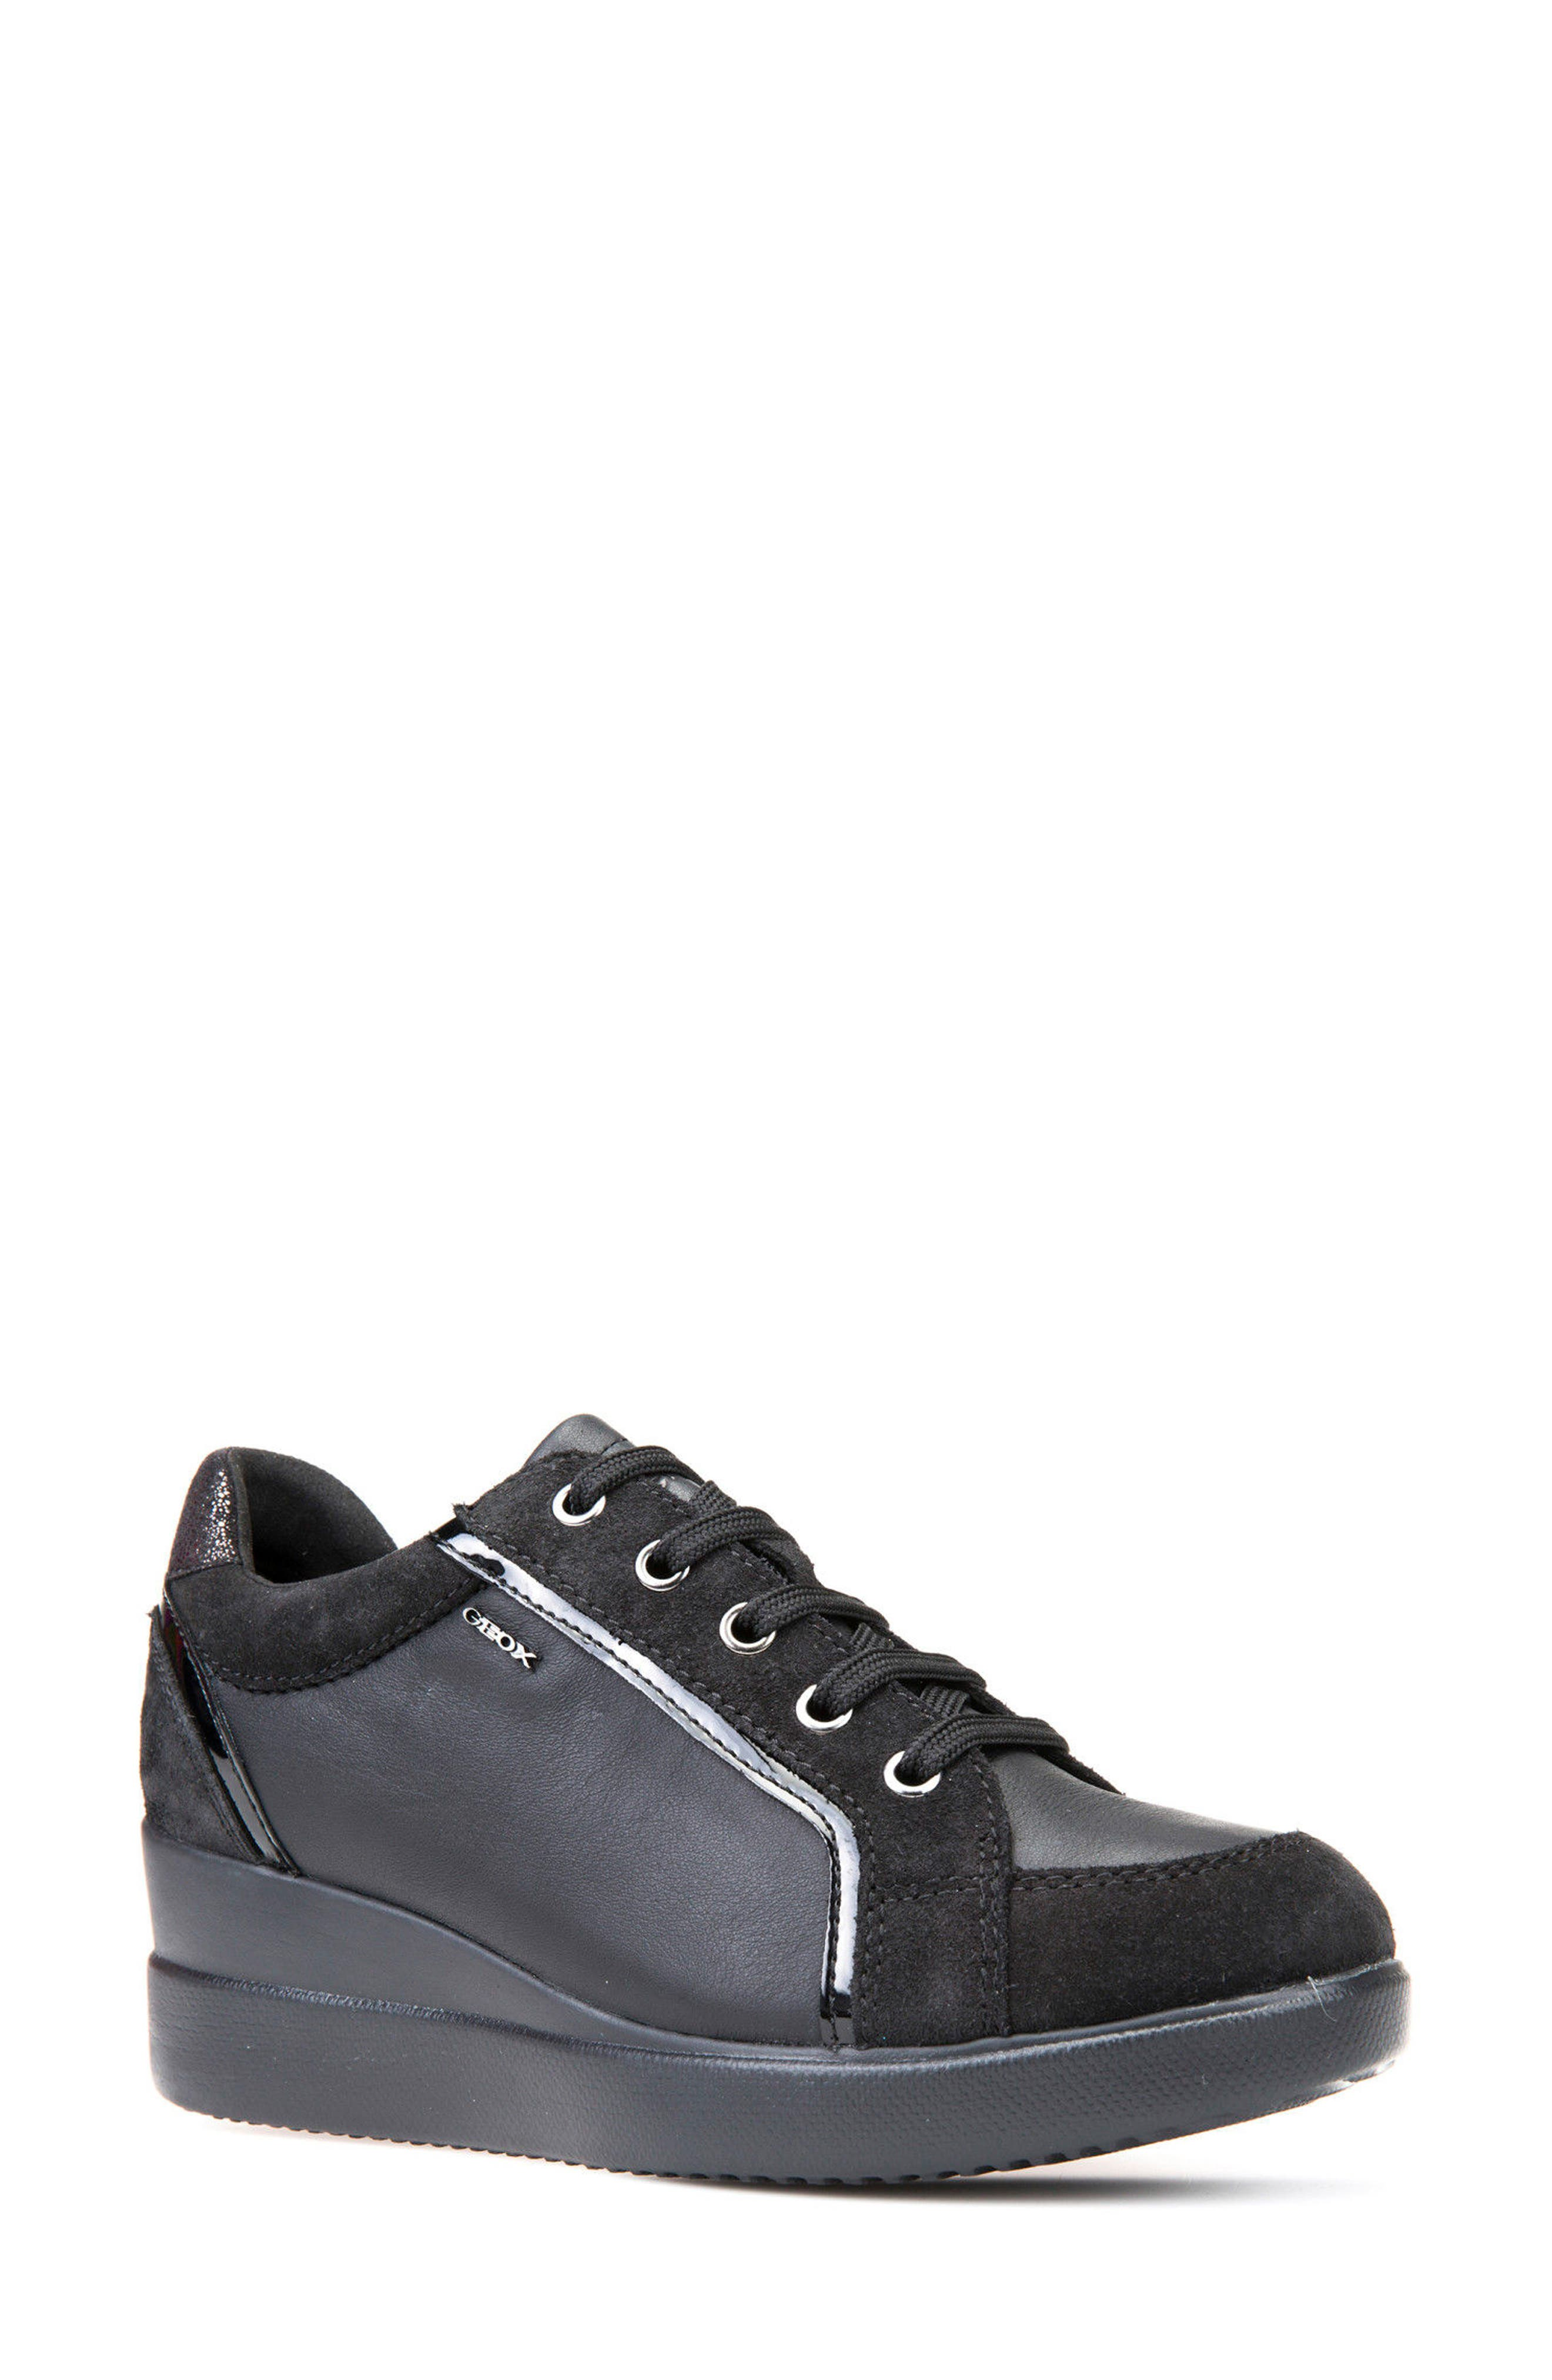 Stardust Wedge Sneaker,                             Main thumbnail 1, color,                             Black Leather